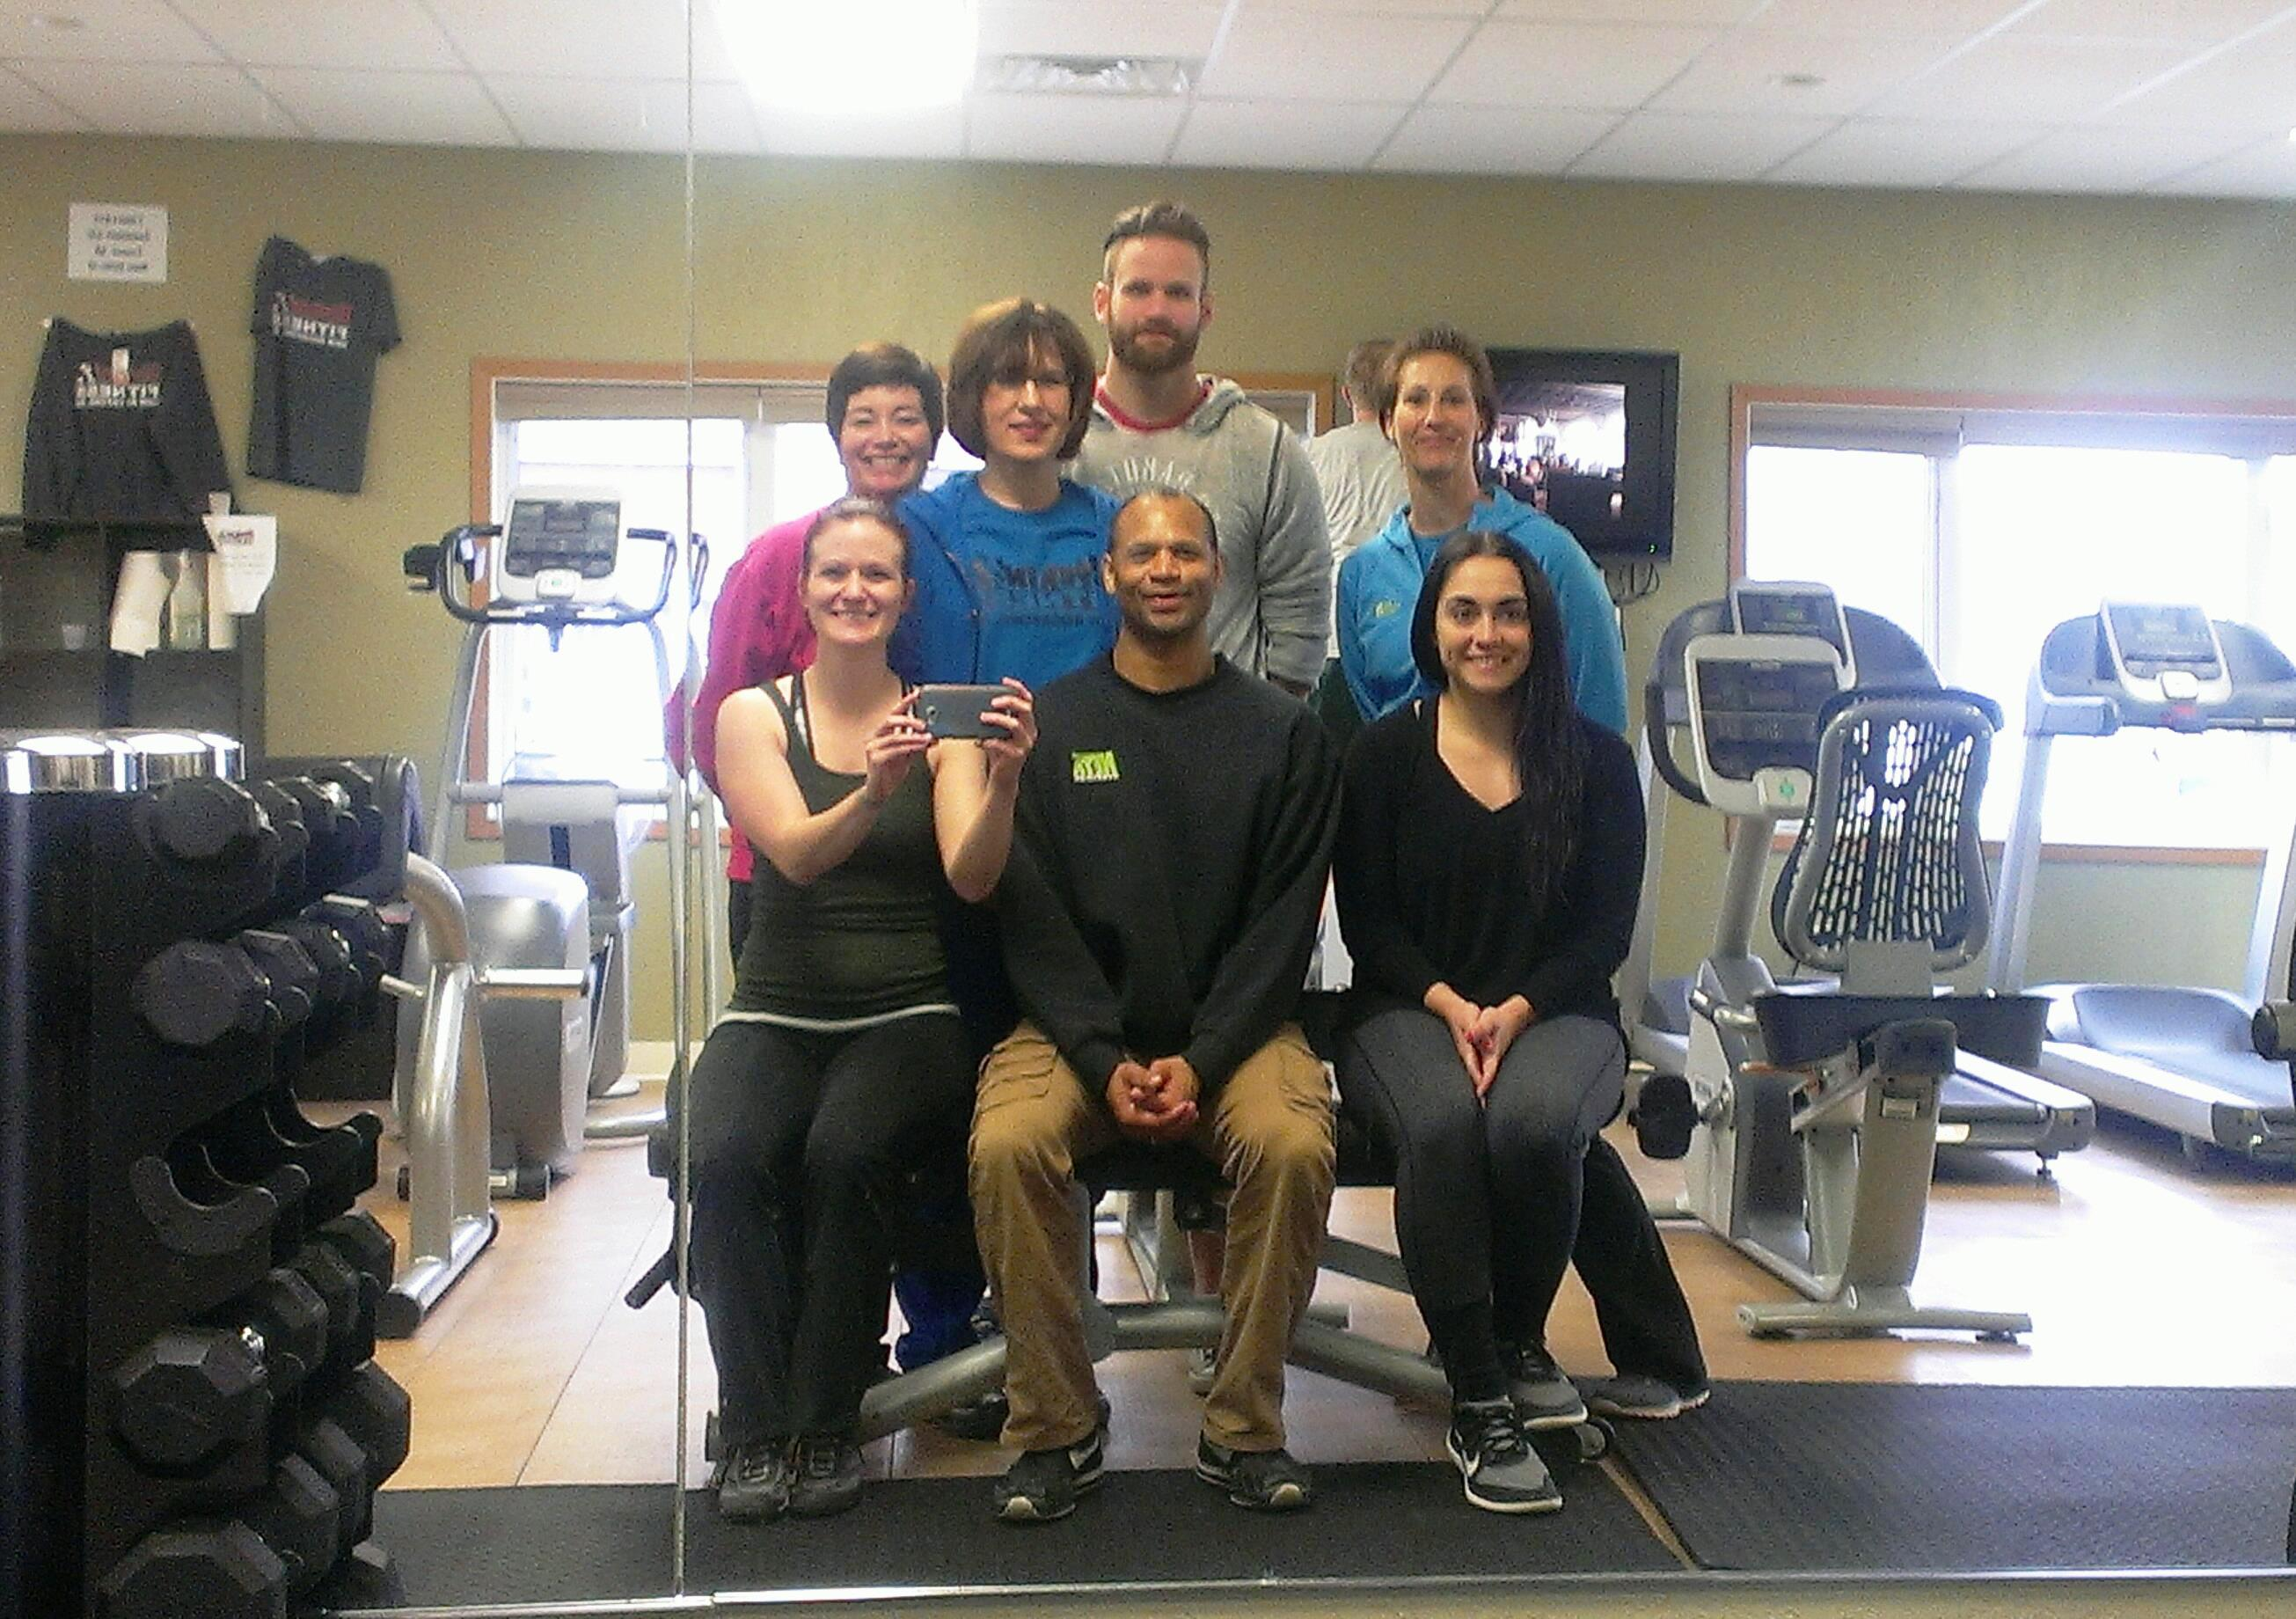 Six complete personal trainer certification workshop at rockin march 24th 2015 rockin fitness in new rockford hosted a personal trainer certification workshop by neta the non profit national exercise trainers 1betcityfo Image collections